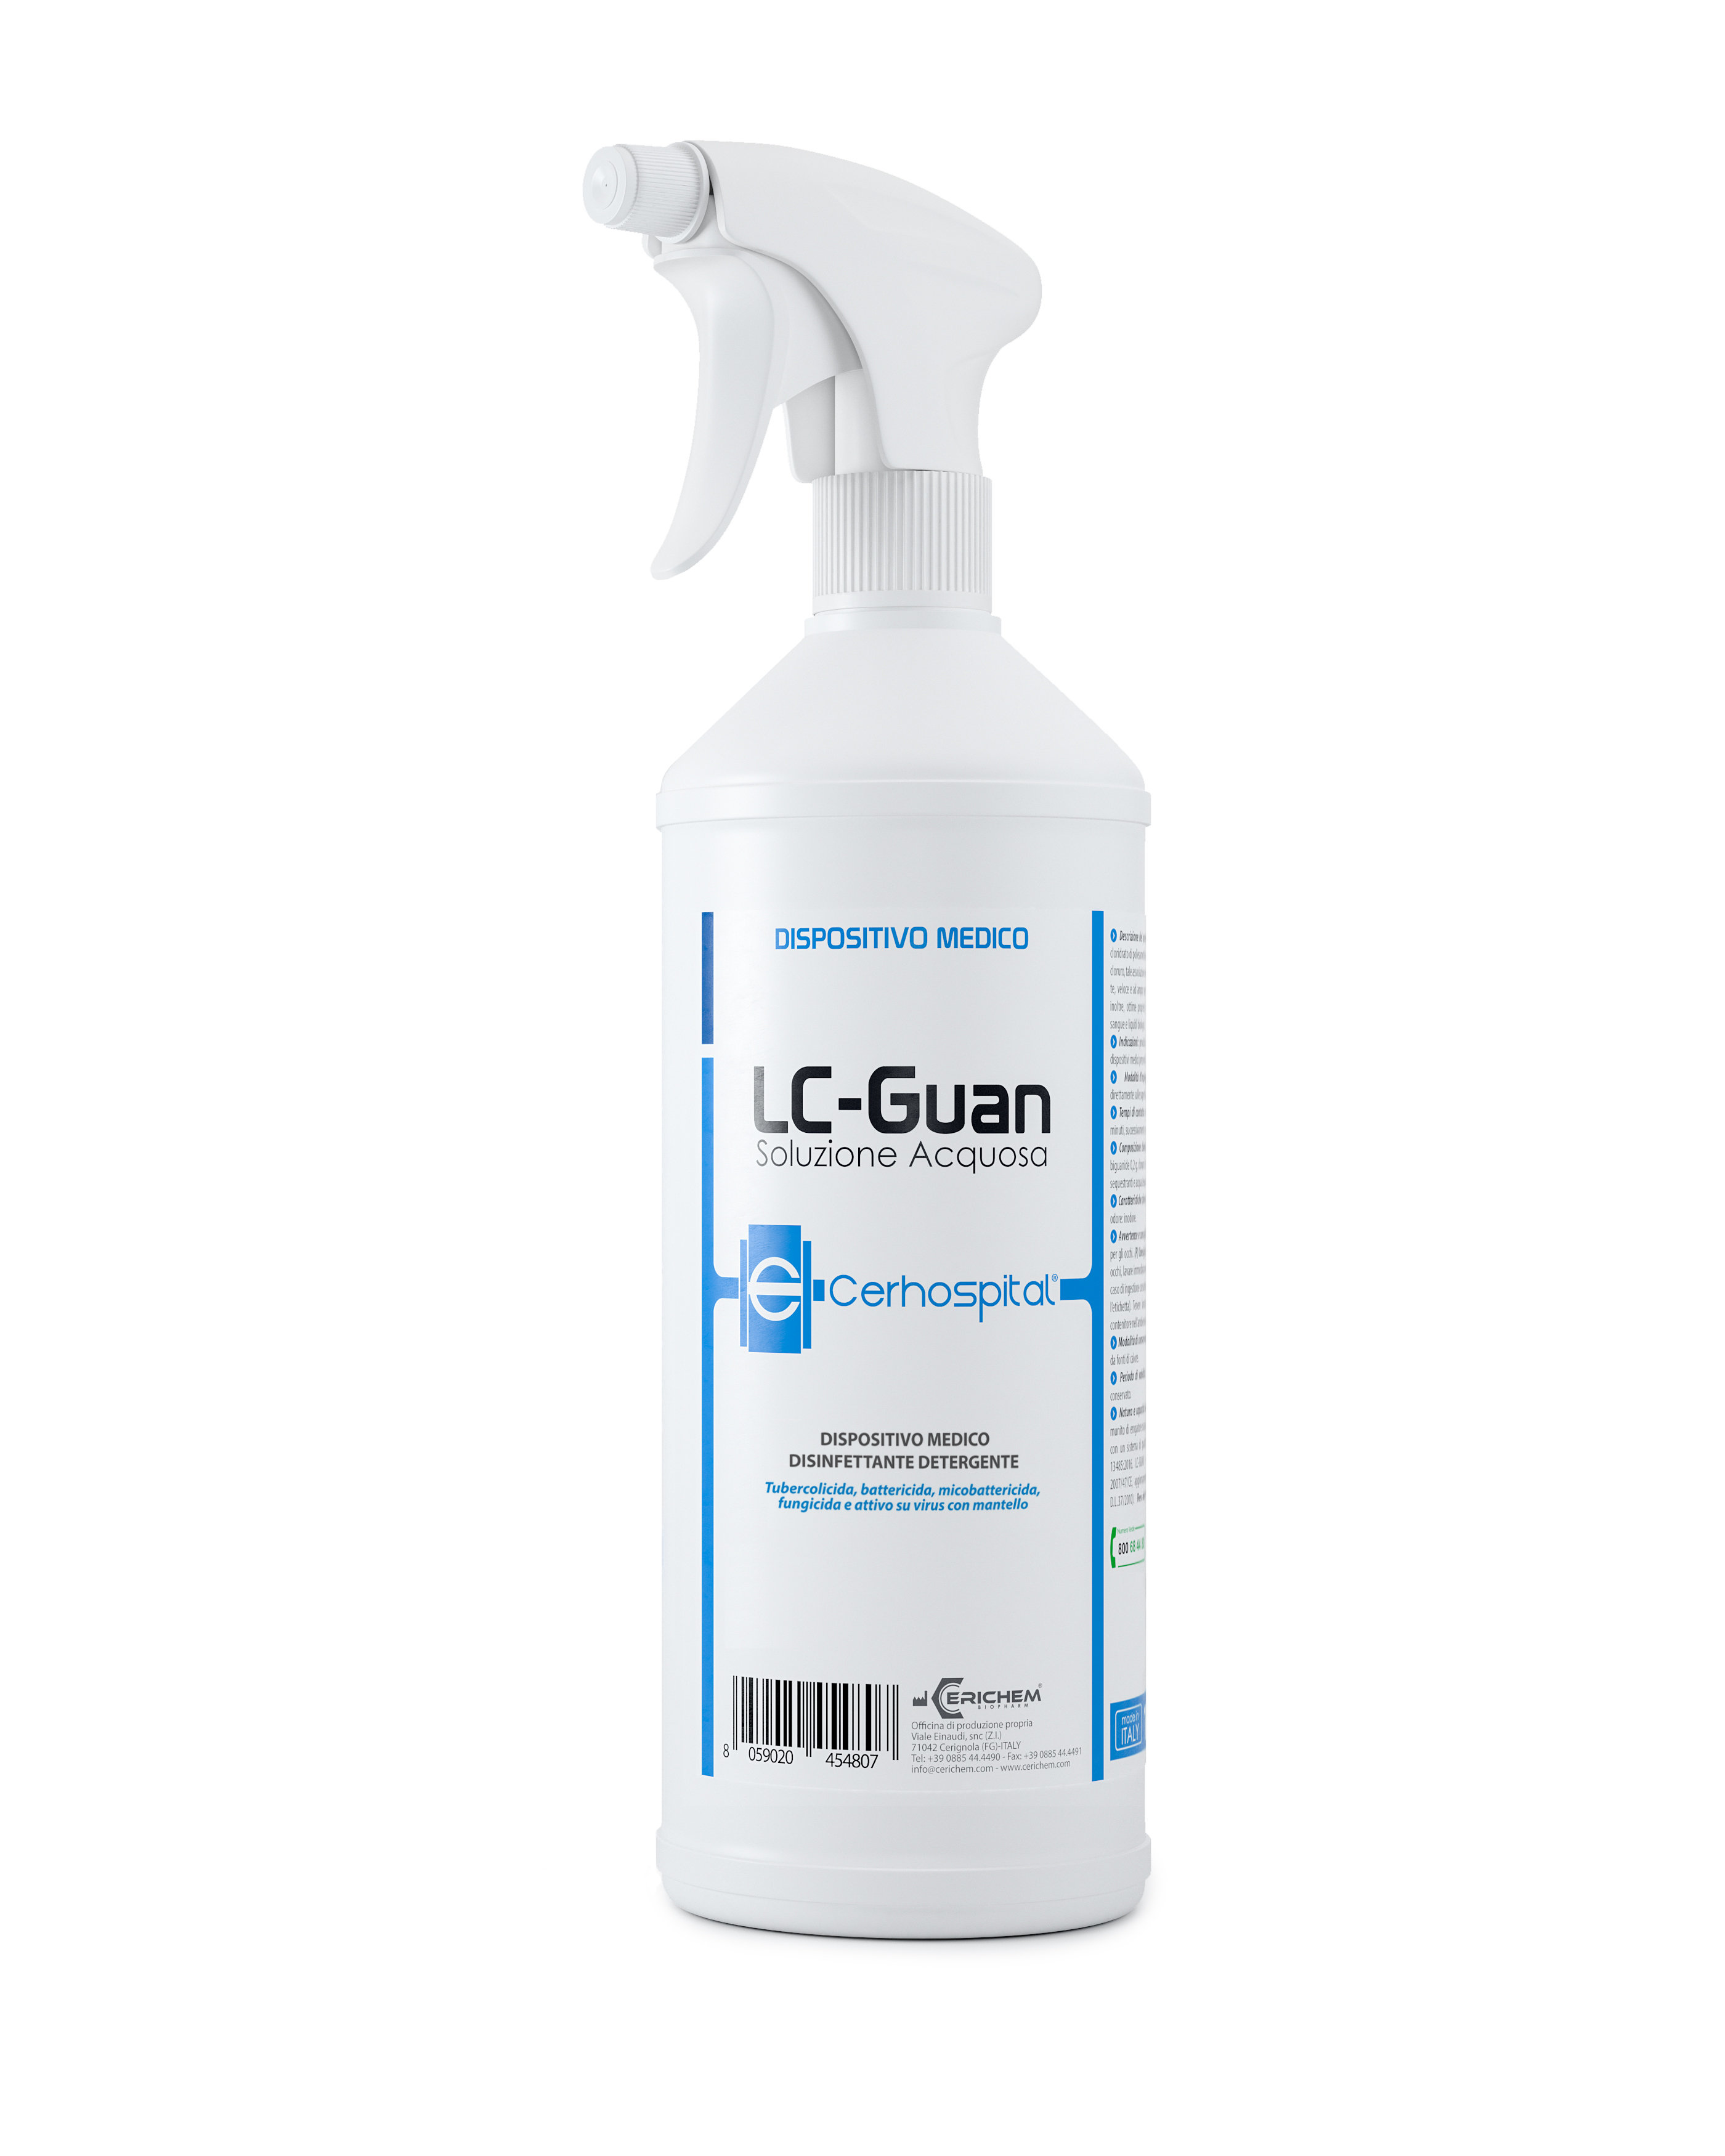 Spray Disinfettante Superfici SX LCGUAN, 1000 ml